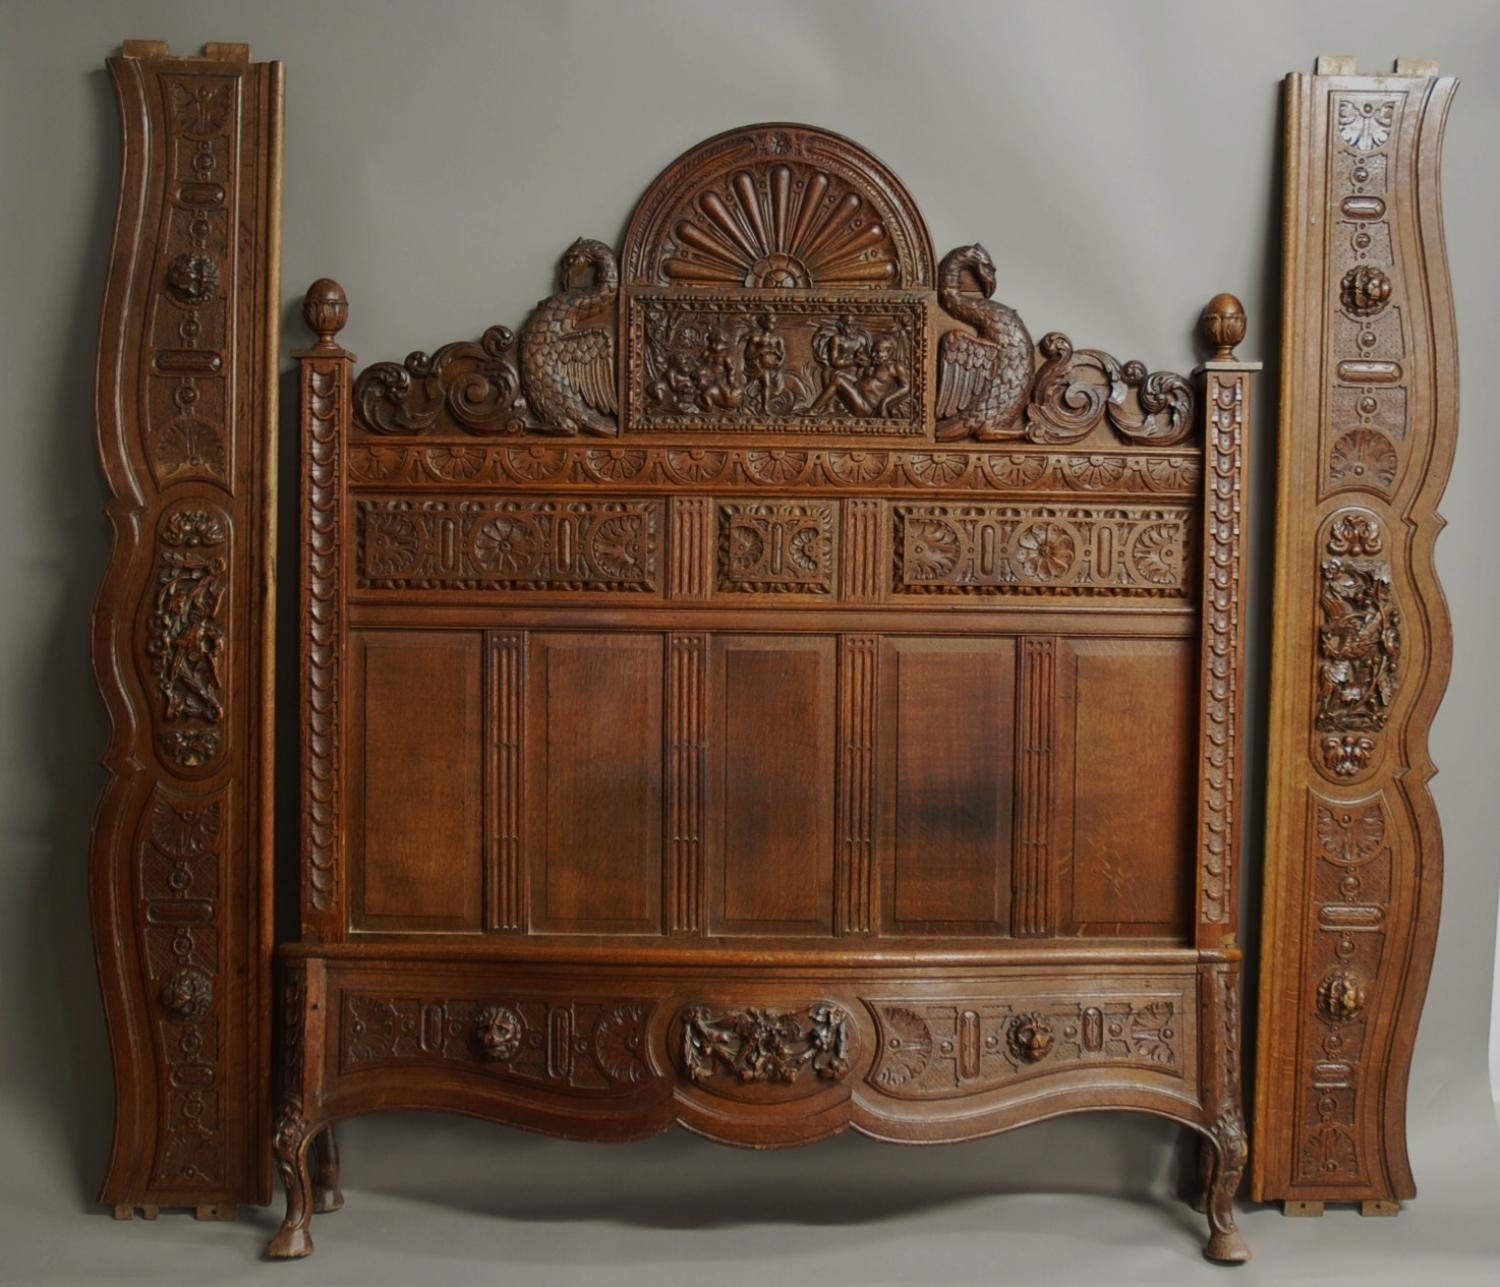 Carved French Mid/late 19th century oak bed